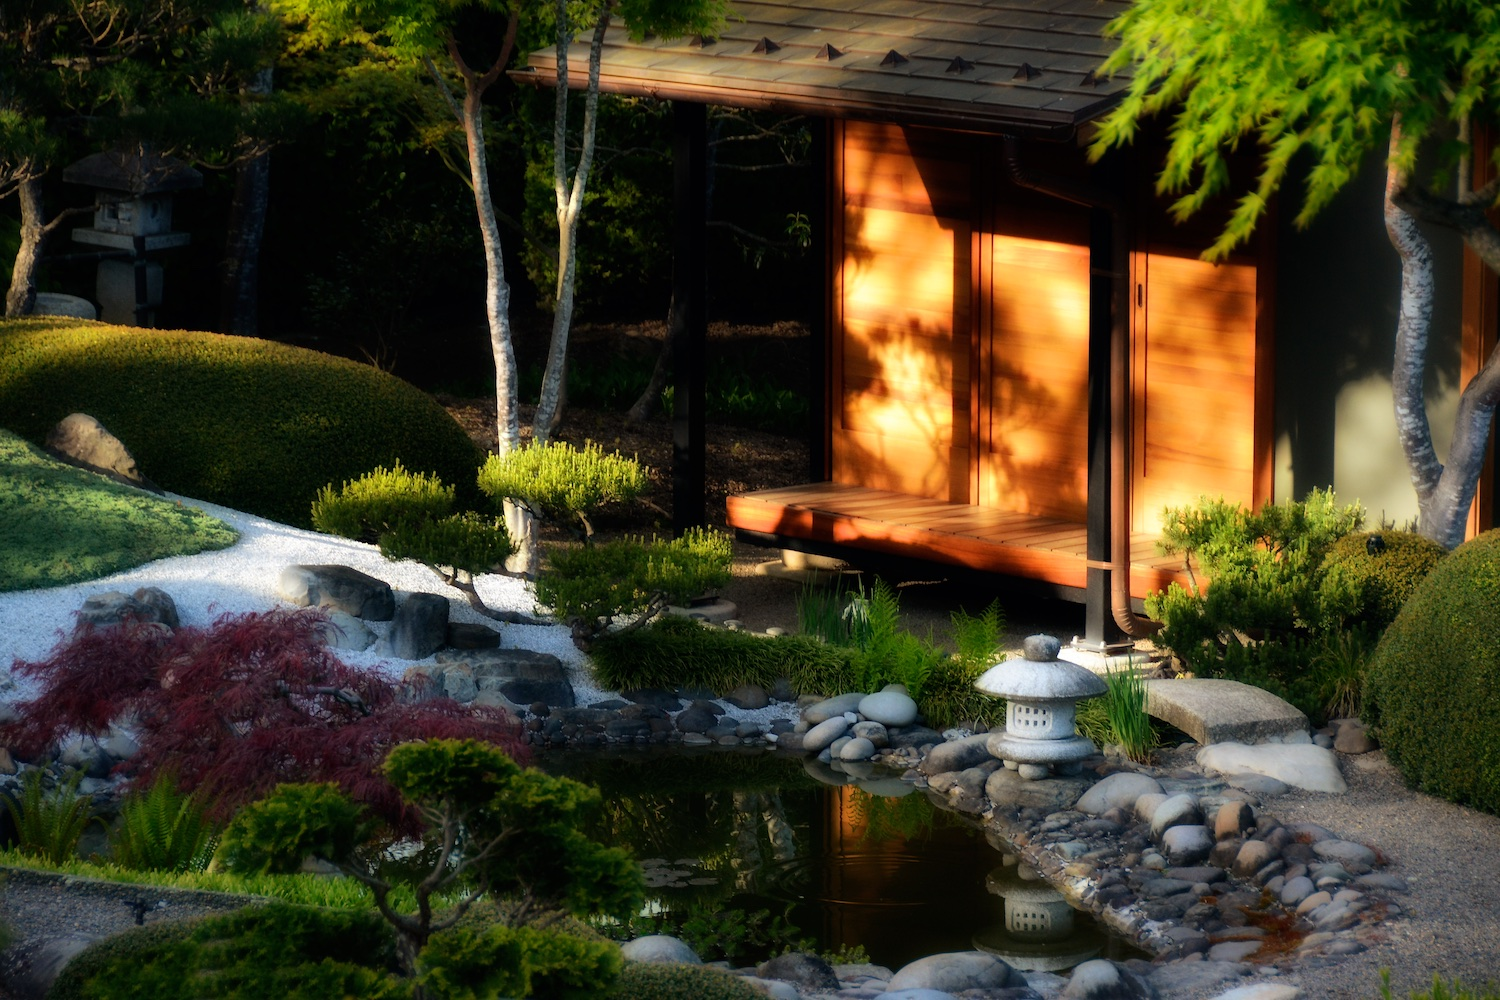 Tea house with pine shadows